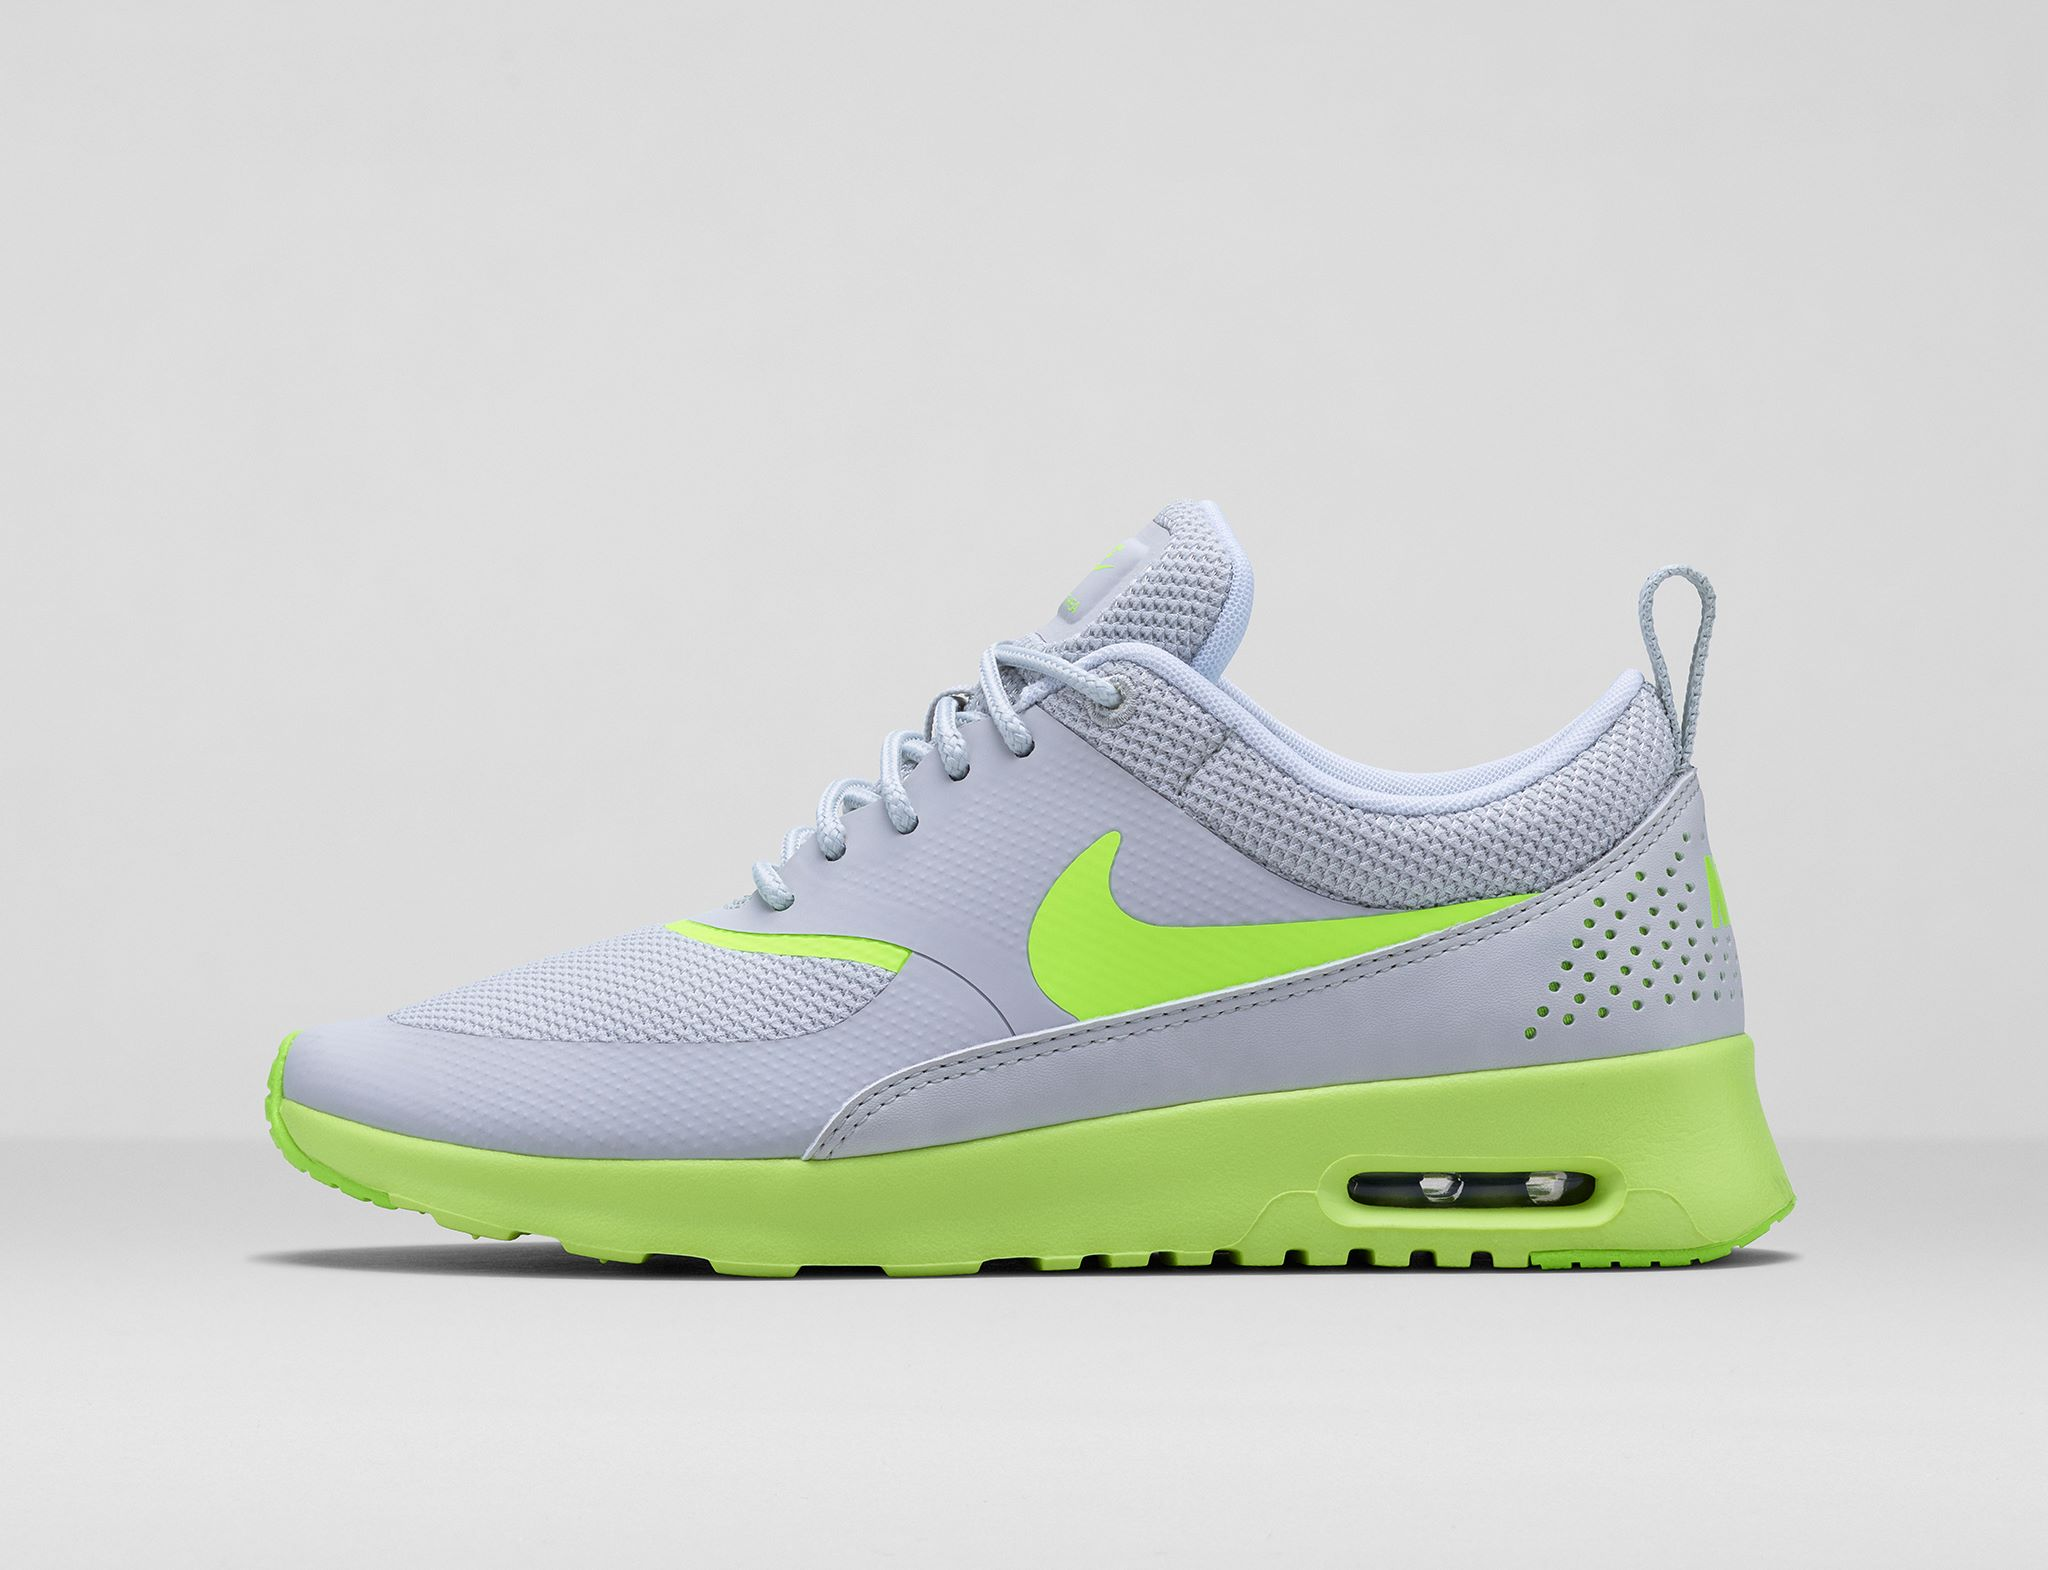 low cost air max thea cool grå yeezy d83d8 391a3